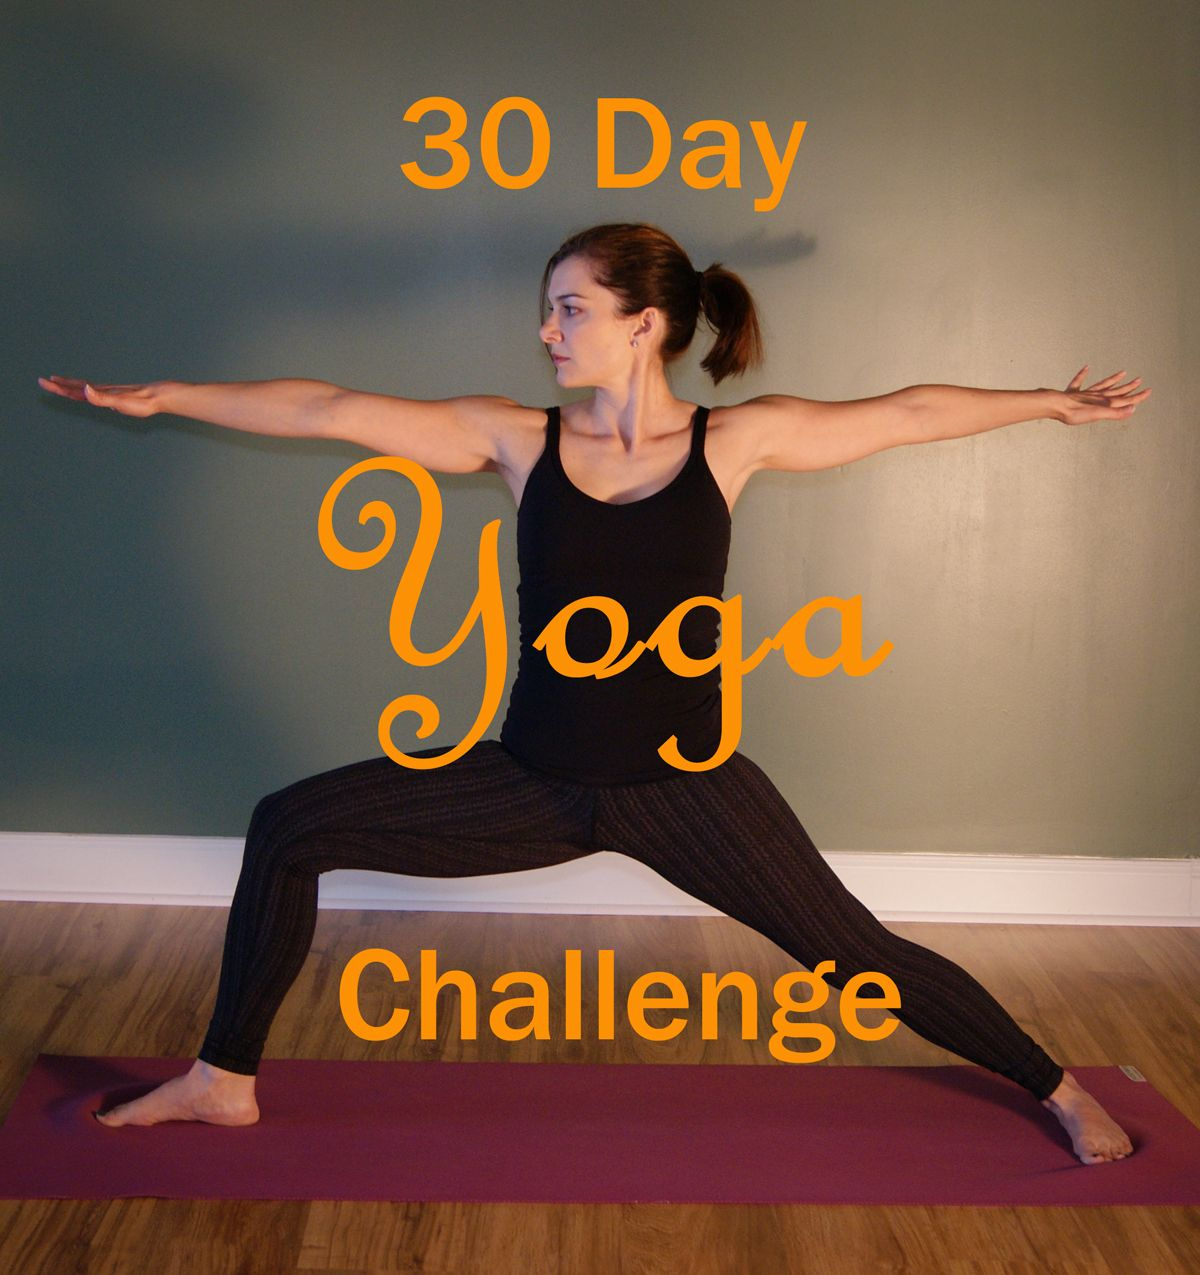 Practicing Yoga At Home A 30 Day Yoga Challenge 30 Day Yoga Challenge 30 Day Yoga Home Yoga Practice